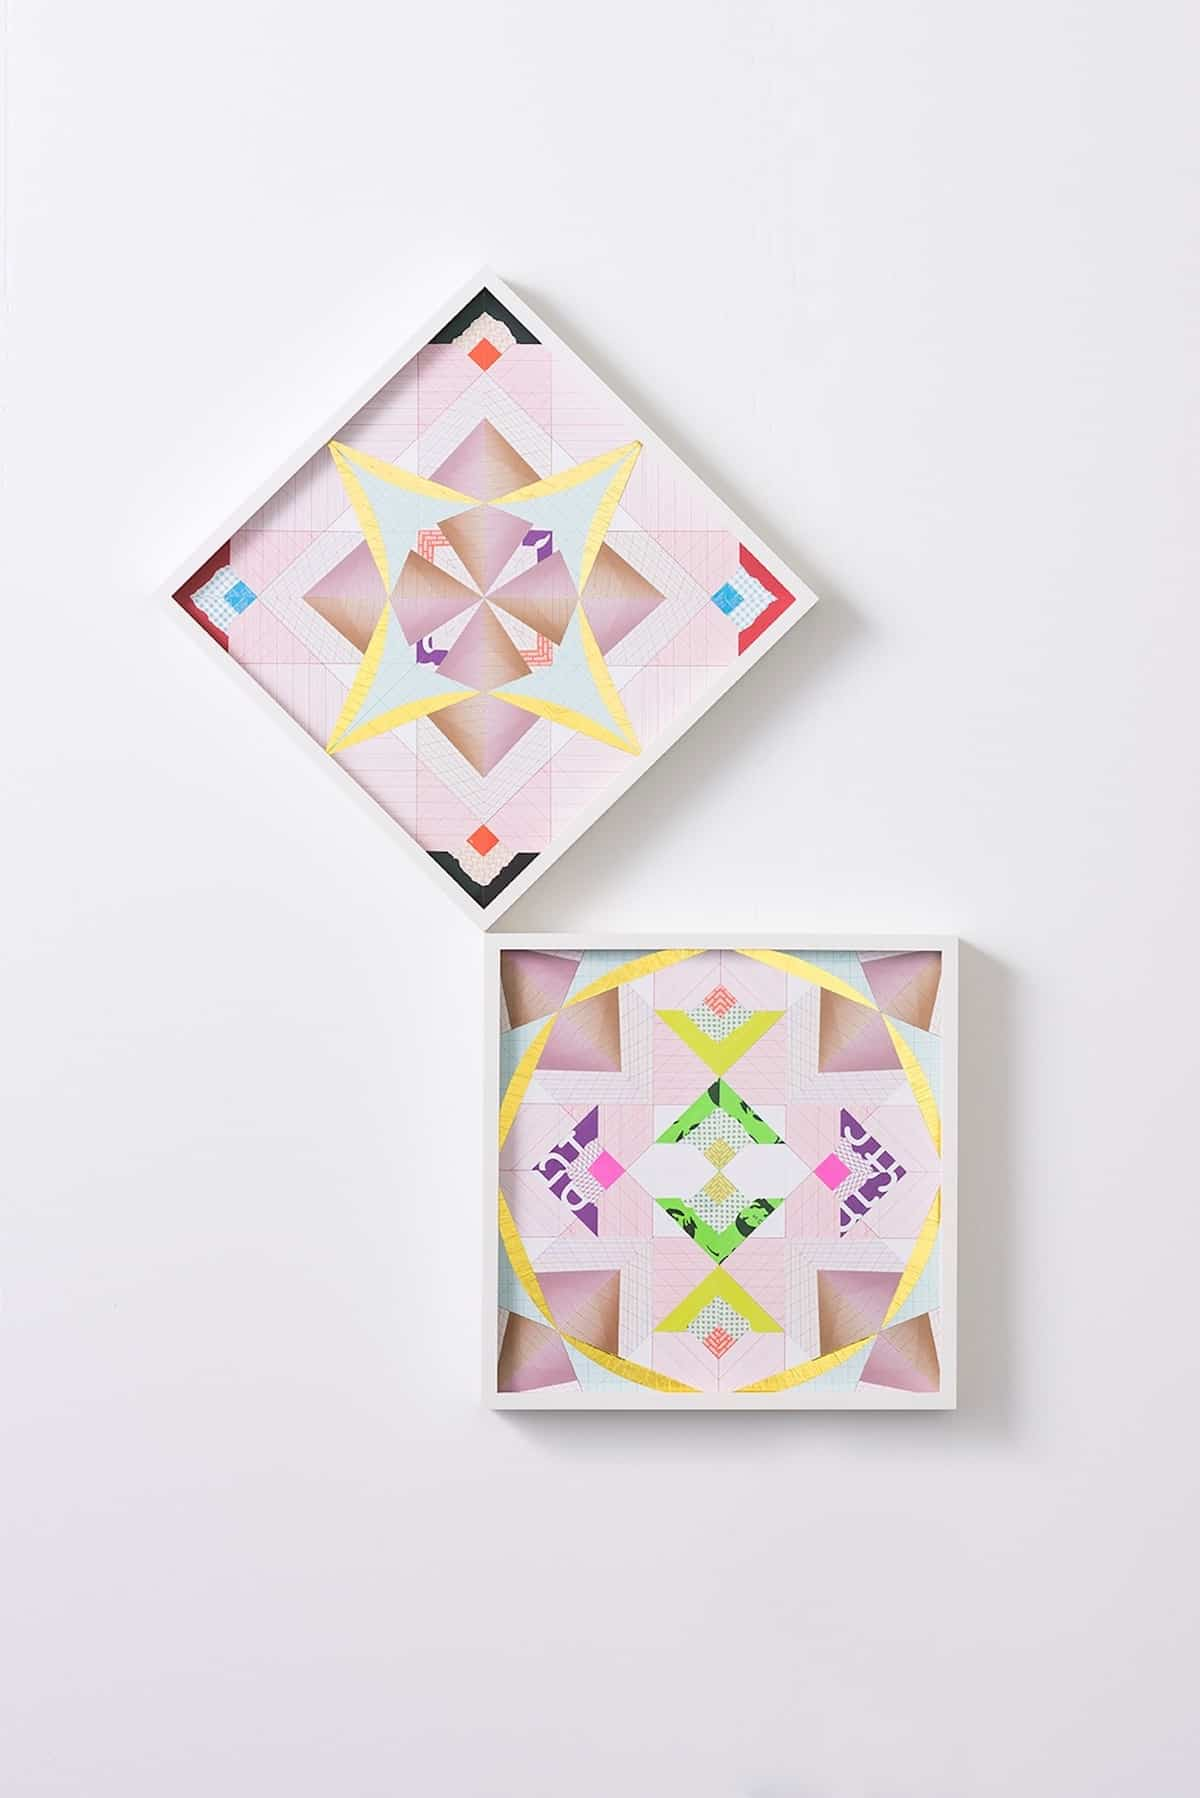 haegue-yang-minuscule-kaleidoscopic-clock-faces-trustworthy-322